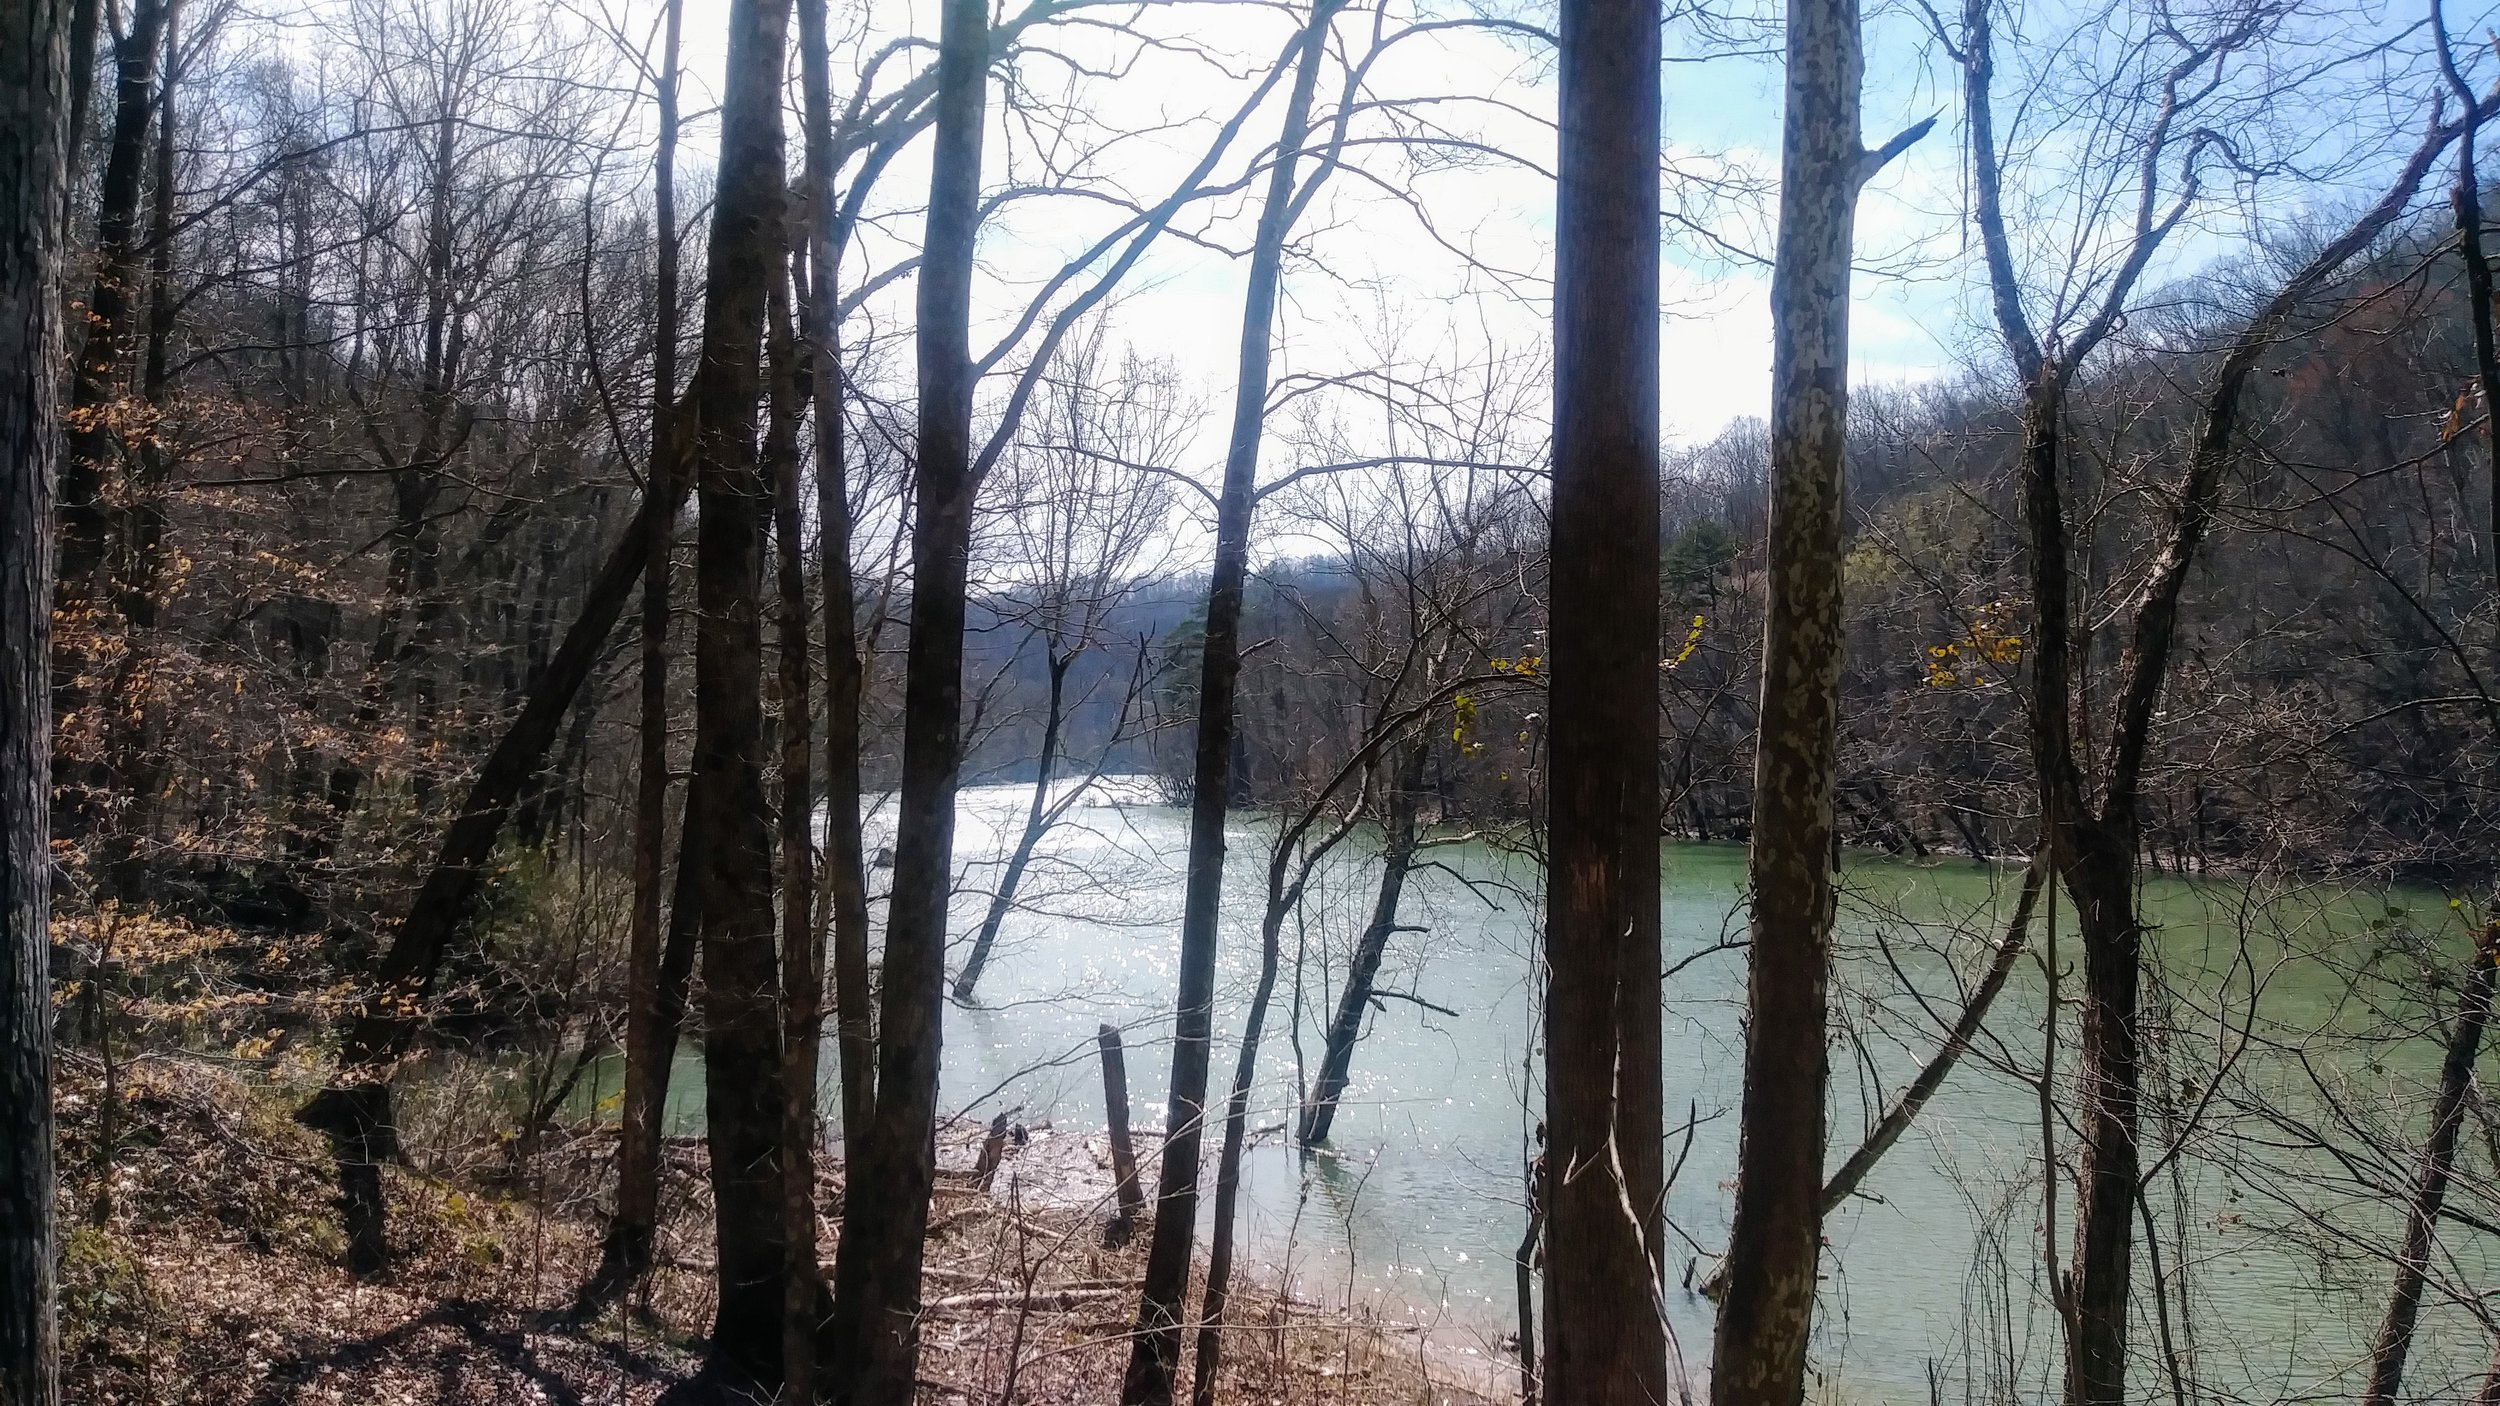 Looking out at Big South Fork from Sheltowee Trace.